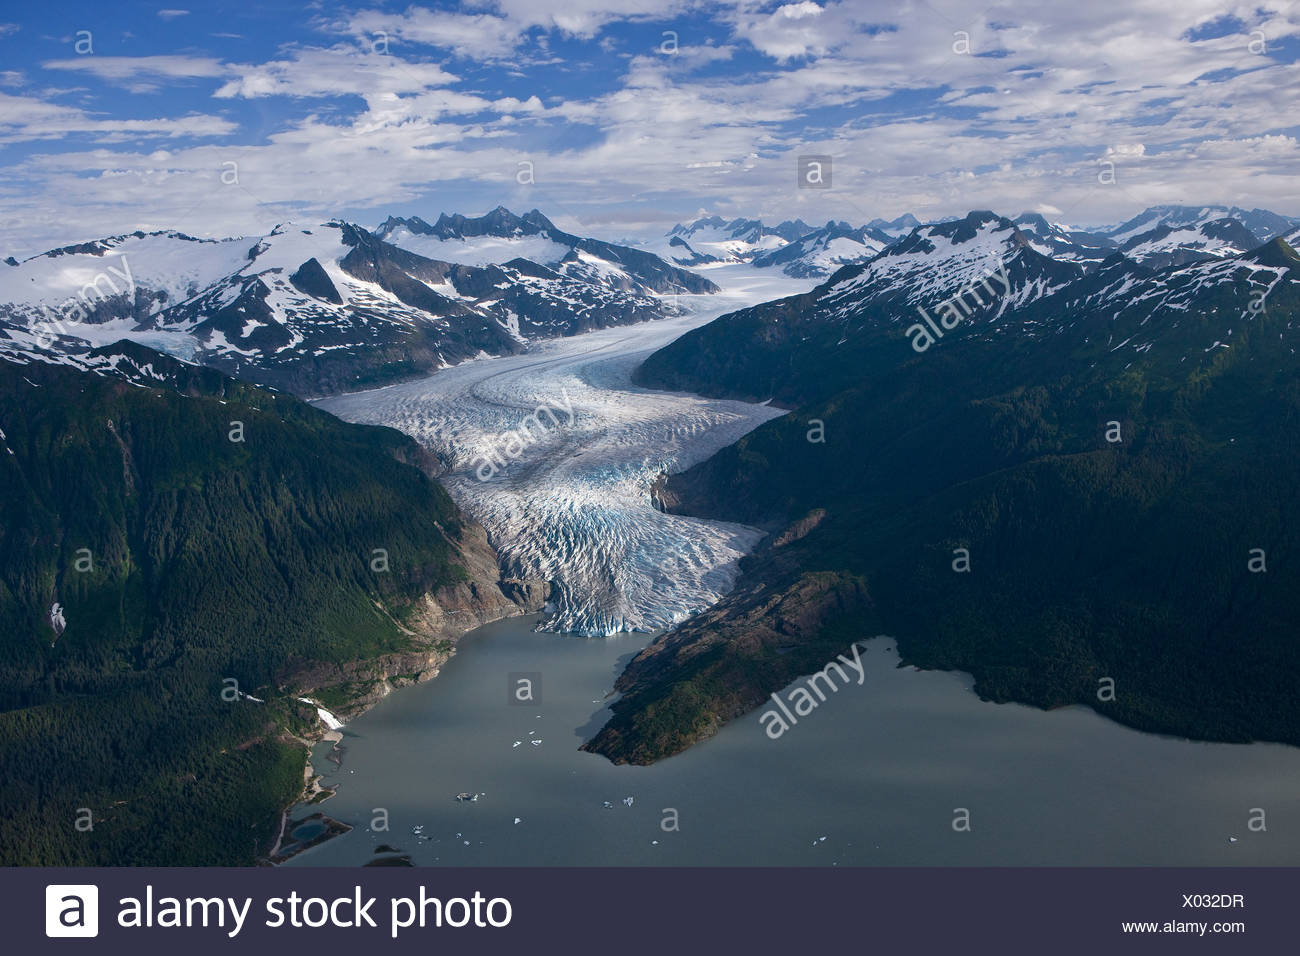 Aerial of Mendenhall Glacier winding its way down from the Juneau Icefield to Mendenhall Lake in Tongass National Forest, Alaska - Stock Image